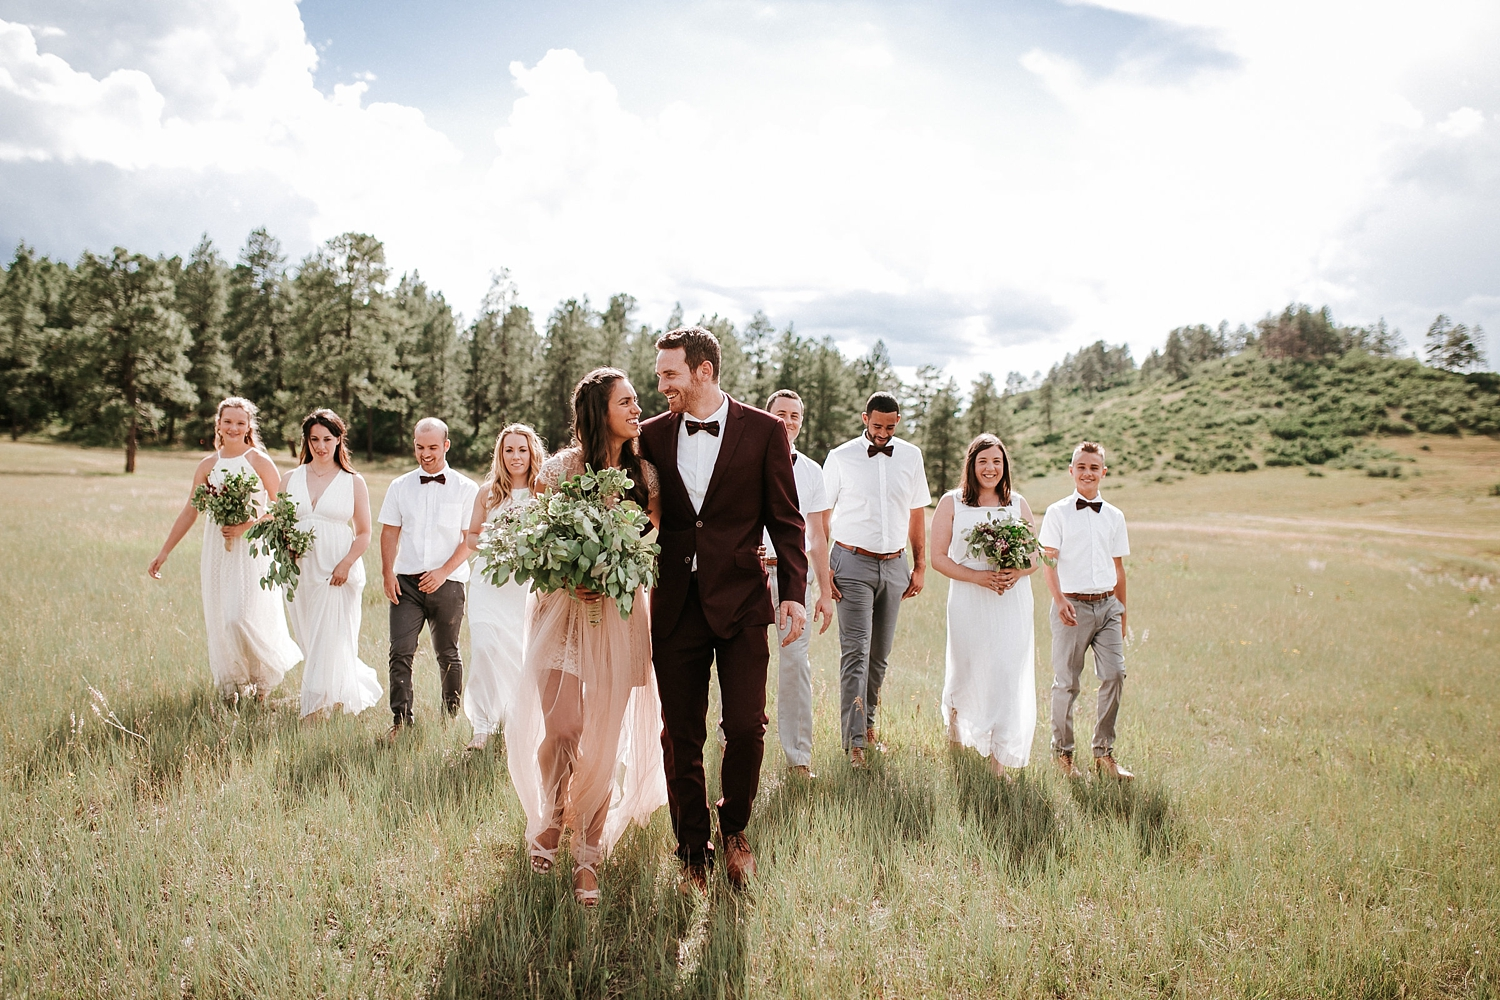 Alicia+lucia+photography+-+albuquerque+wedding+photographer+-+santa+fe+wedding+photography+-+new+mexico+wedding+photographer+-+pagosa+springs+wedding+-+destination+wedding_0034.jpg